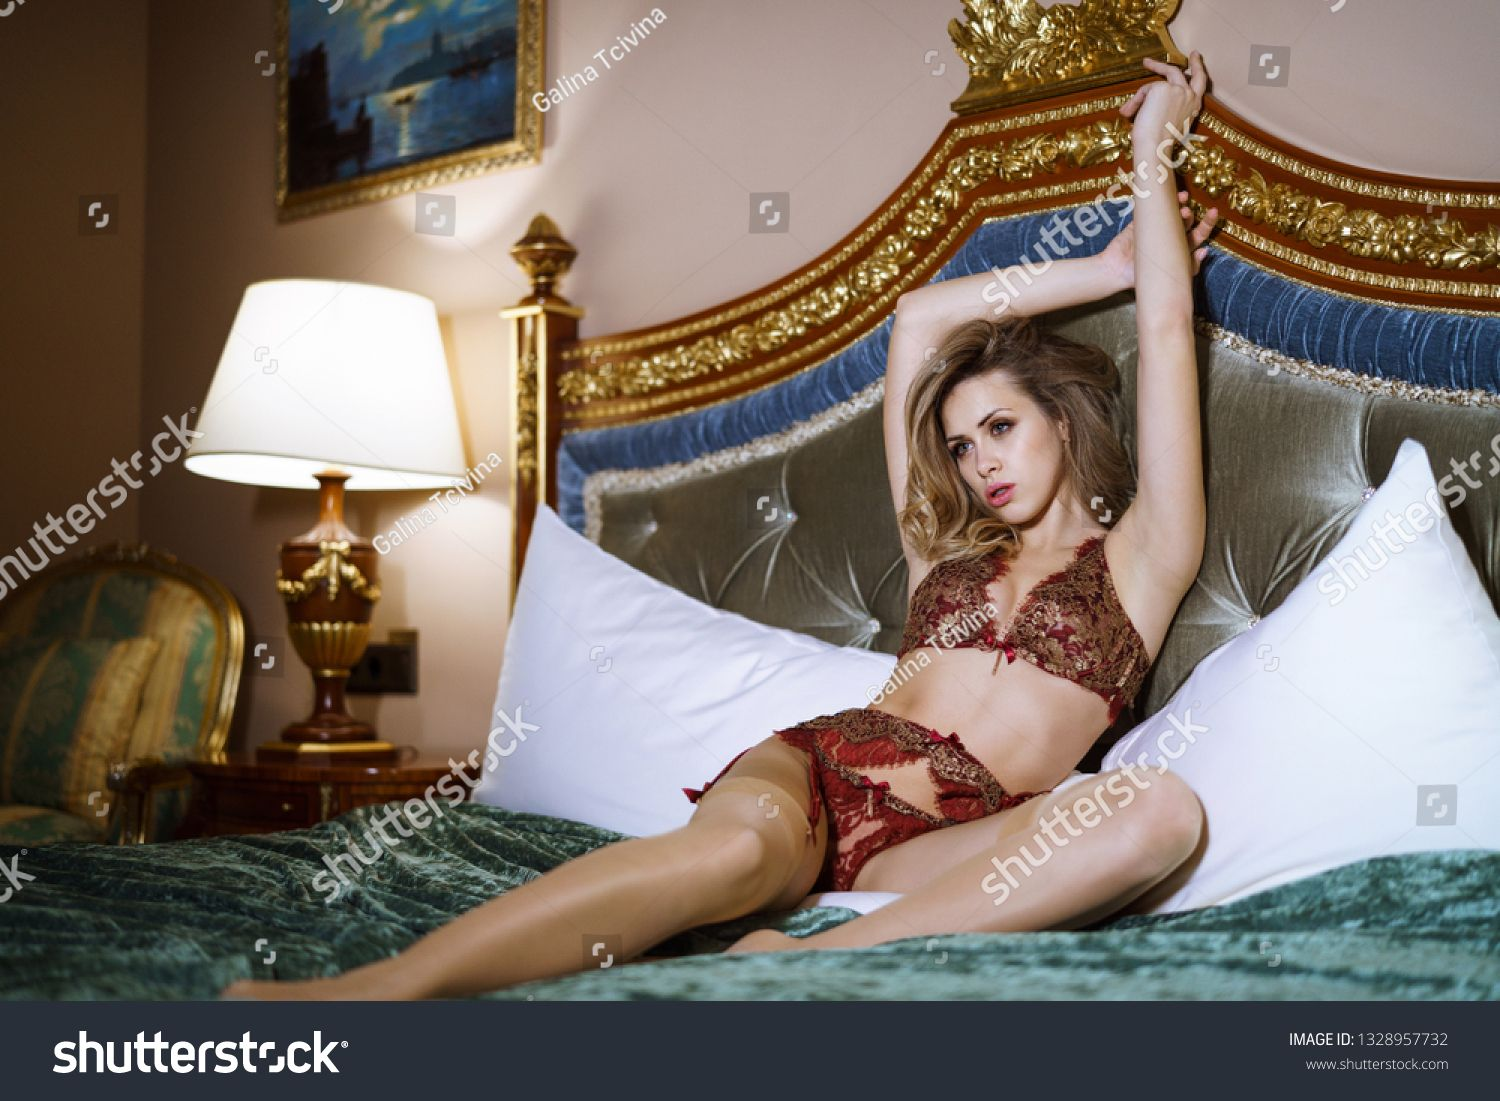 Beautiful sexy lady in red panties and bra on the bed. Close up fashion portrait of model indoors. Beauty blonde woman. Attractive female body in lace lingerie. Closeup fashionable naked girl #Sponsored , #affiliate, #fashion#Close#bed#indoors